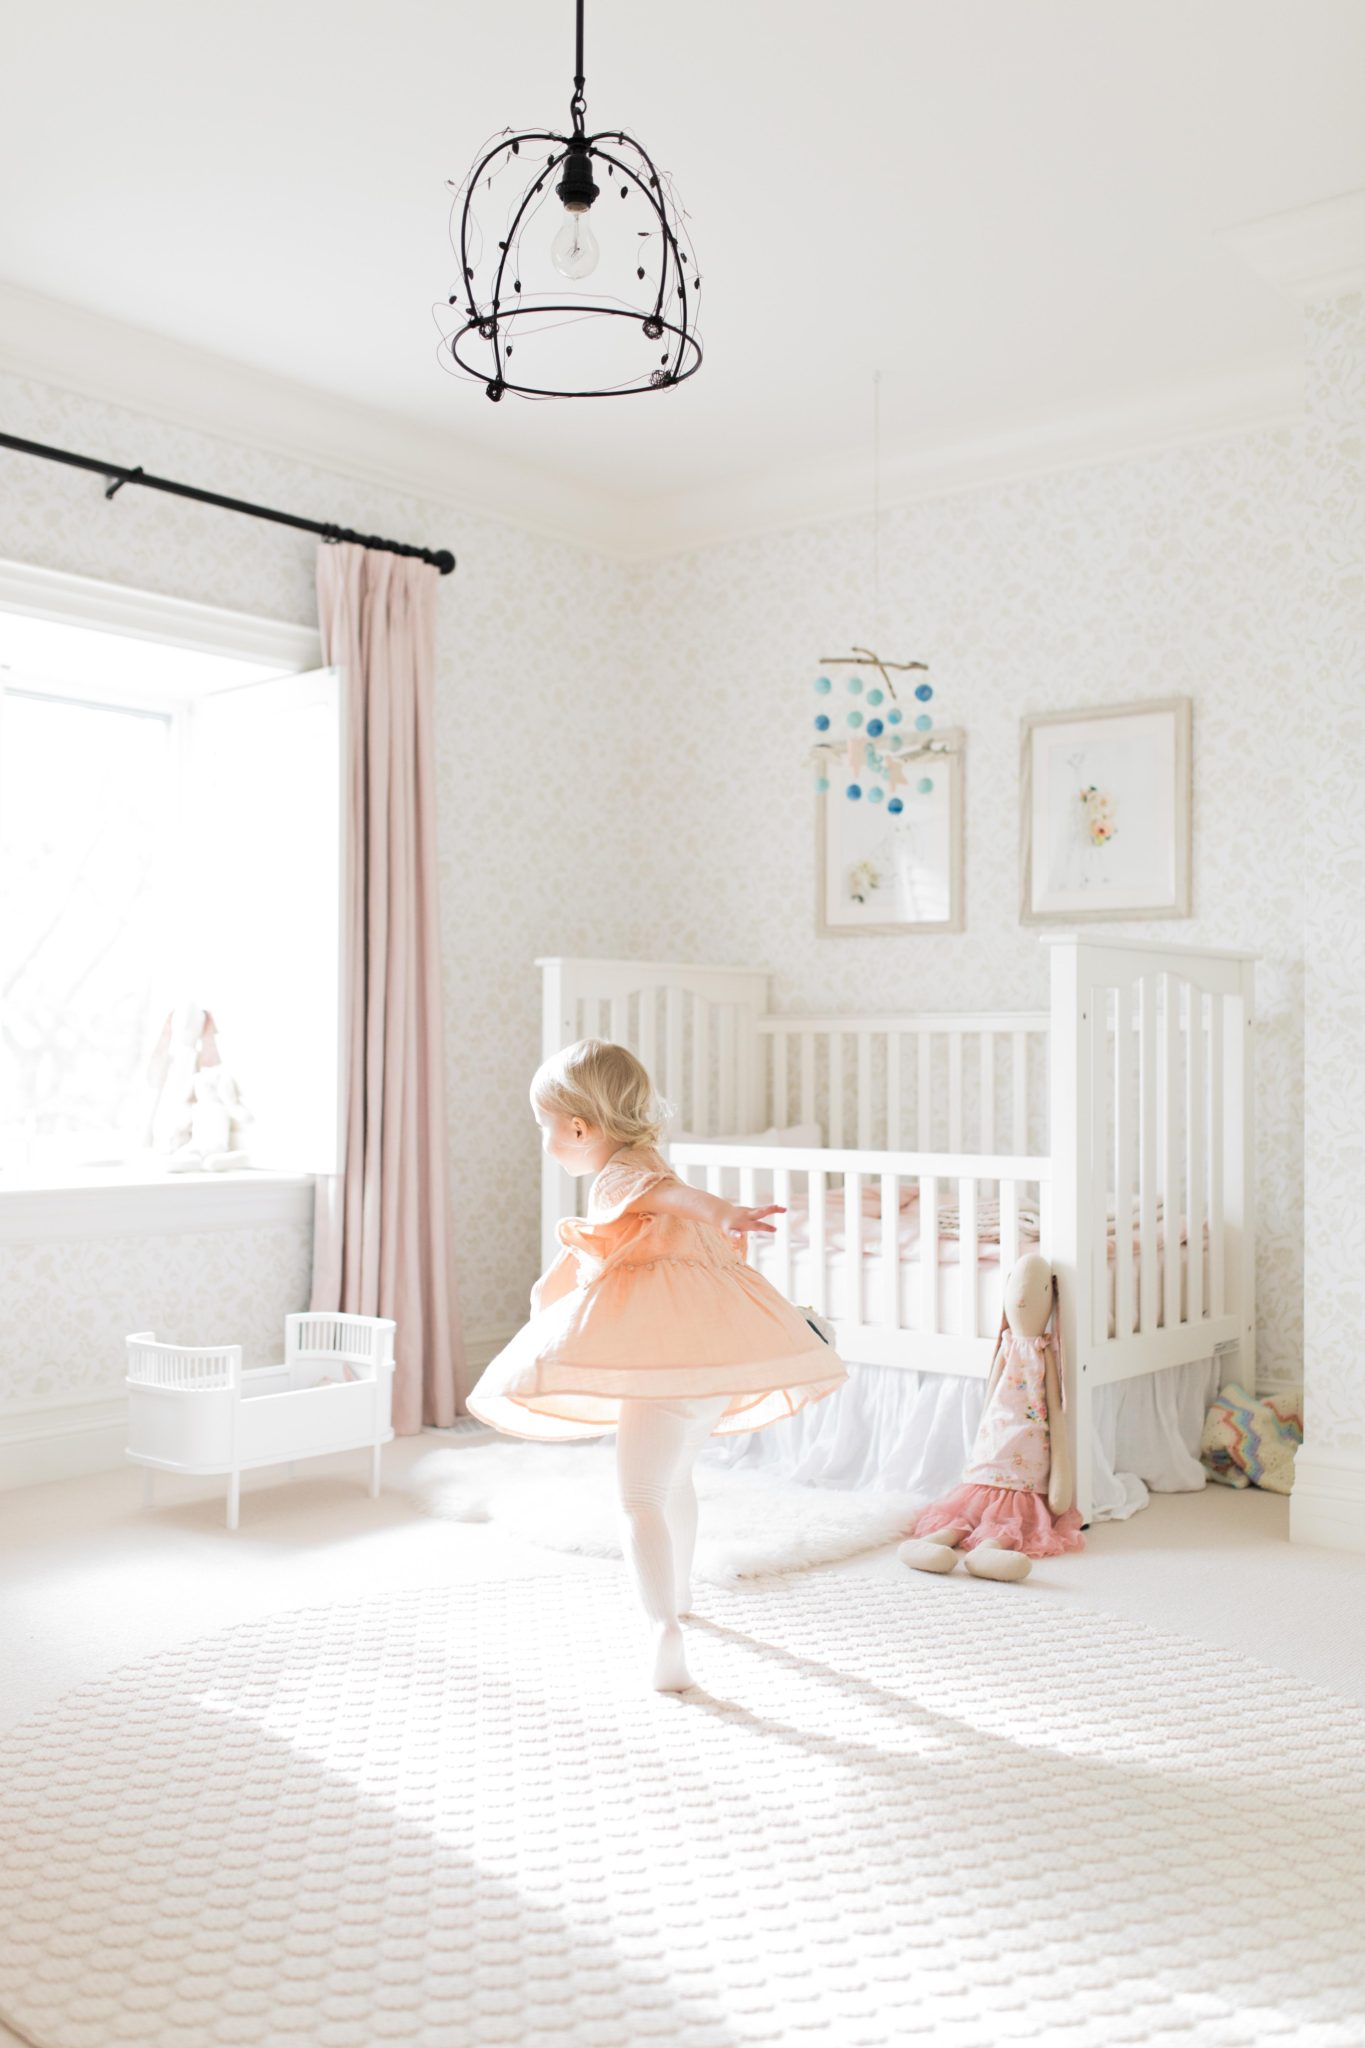 Olive's Toddler Room